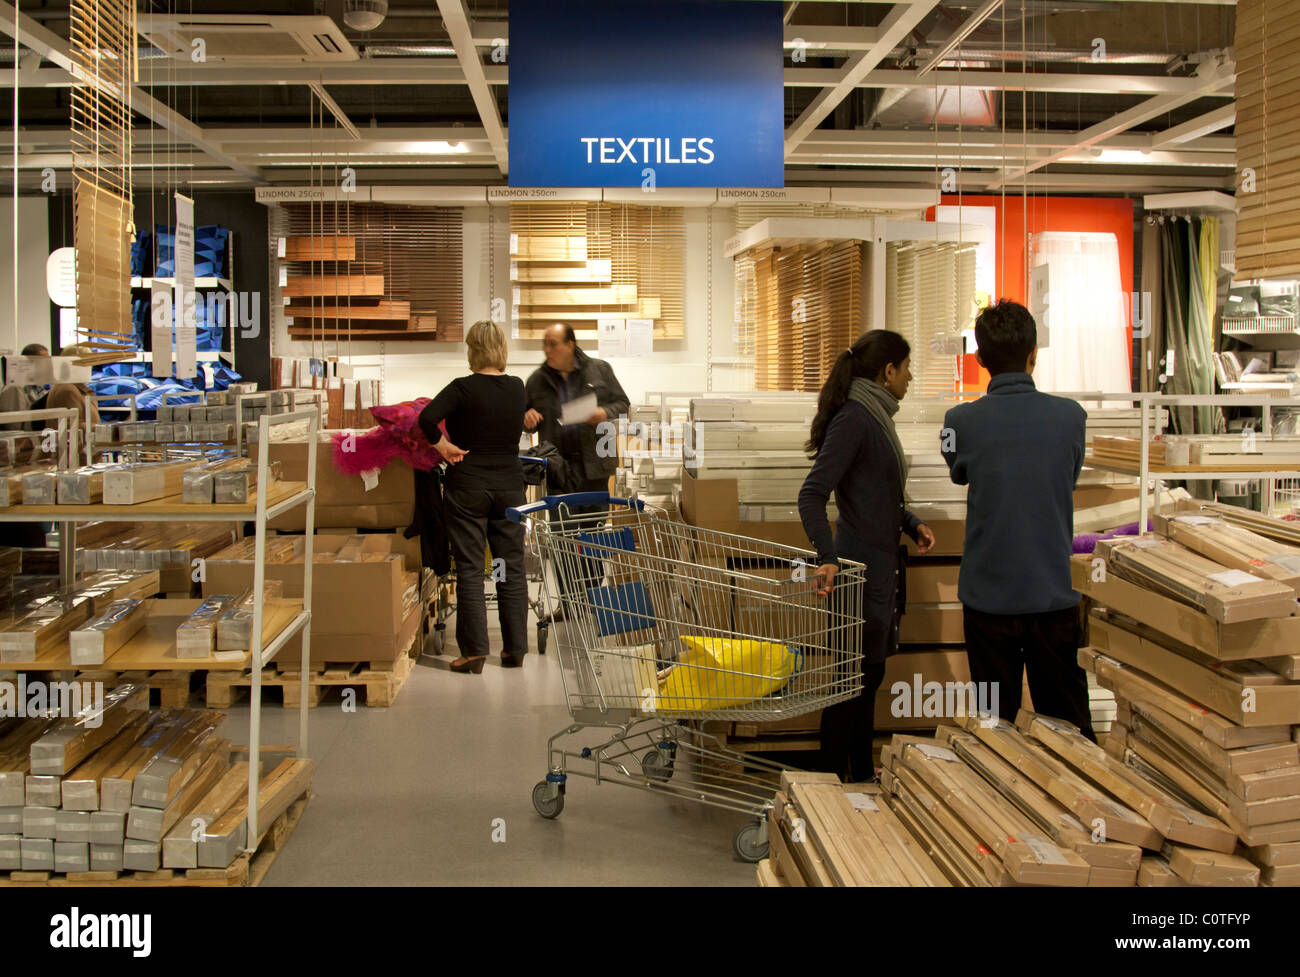 Textile department ikea store wembley london stock for Ikea shops london